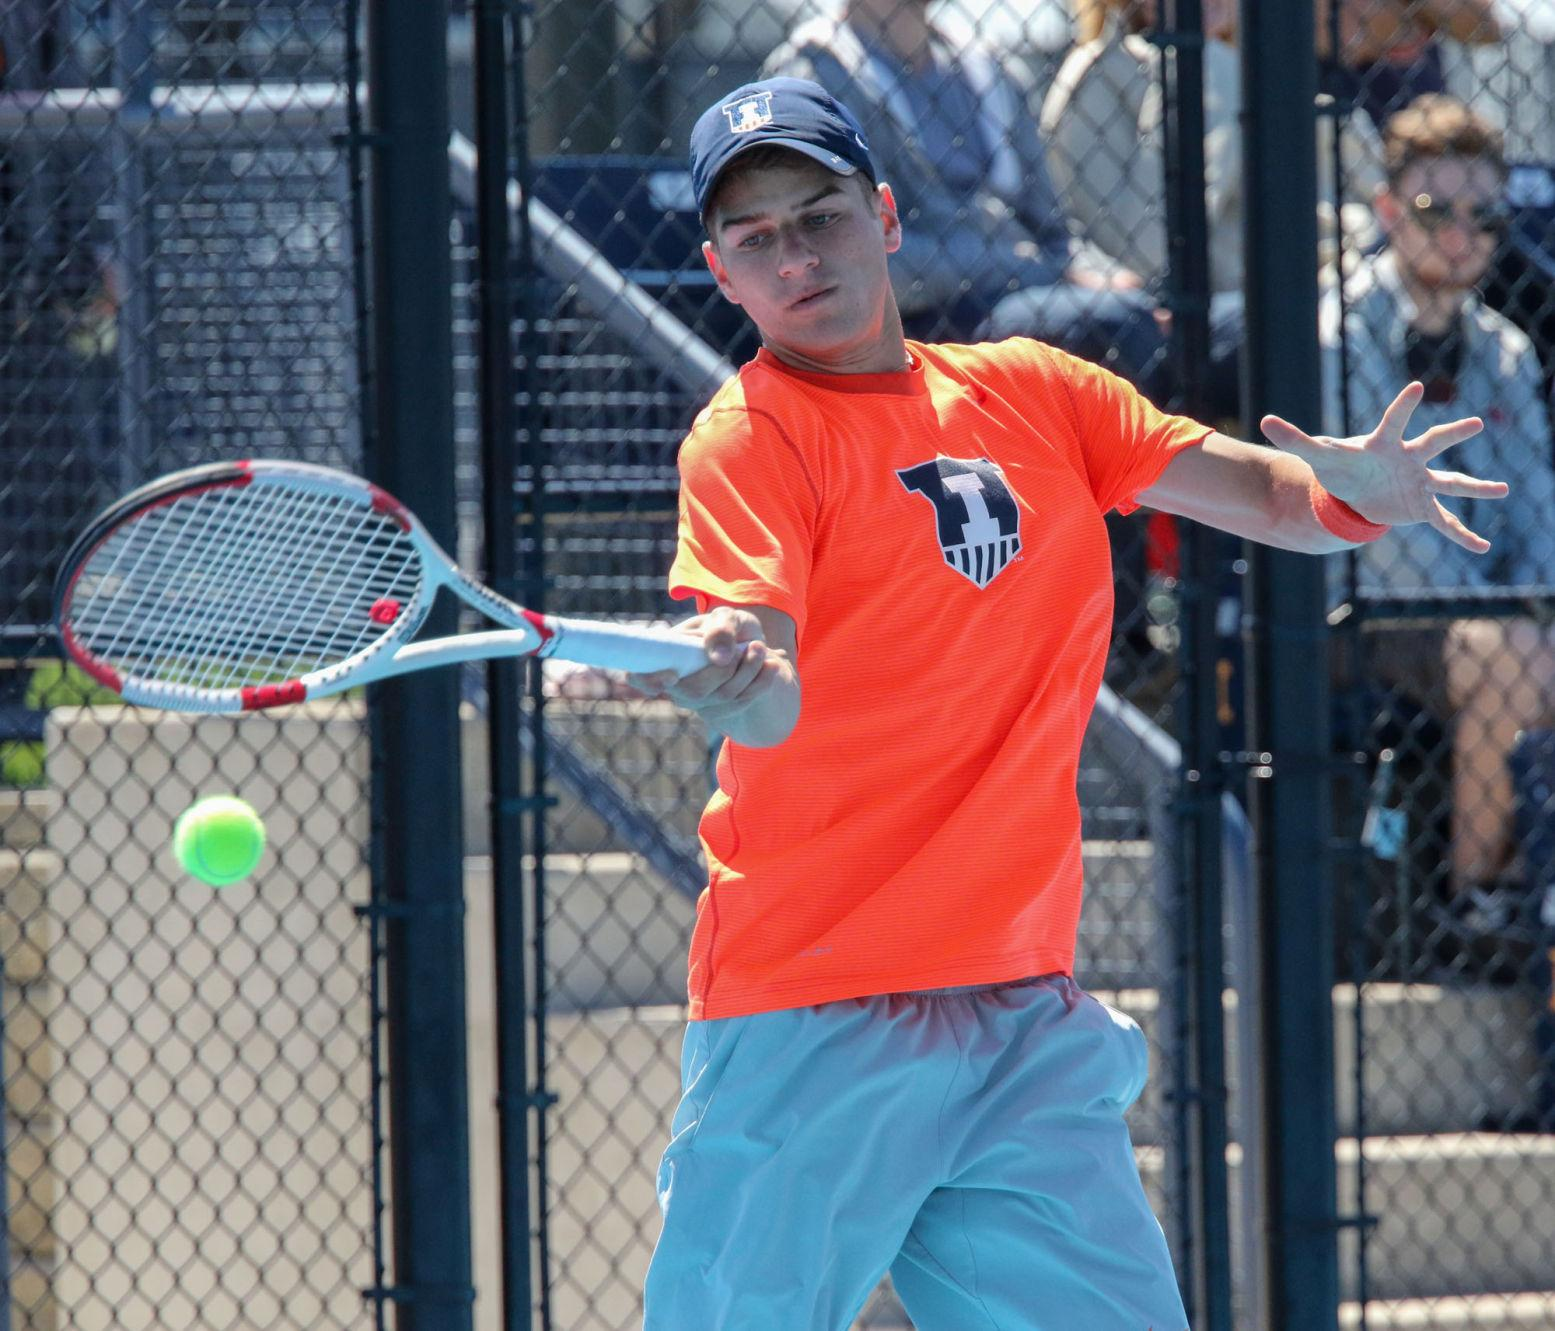 Illinois' Aron Hiltzik makes a return during team's 6-1 winning game against Iowa at Atkins Tennis Center on April 11.